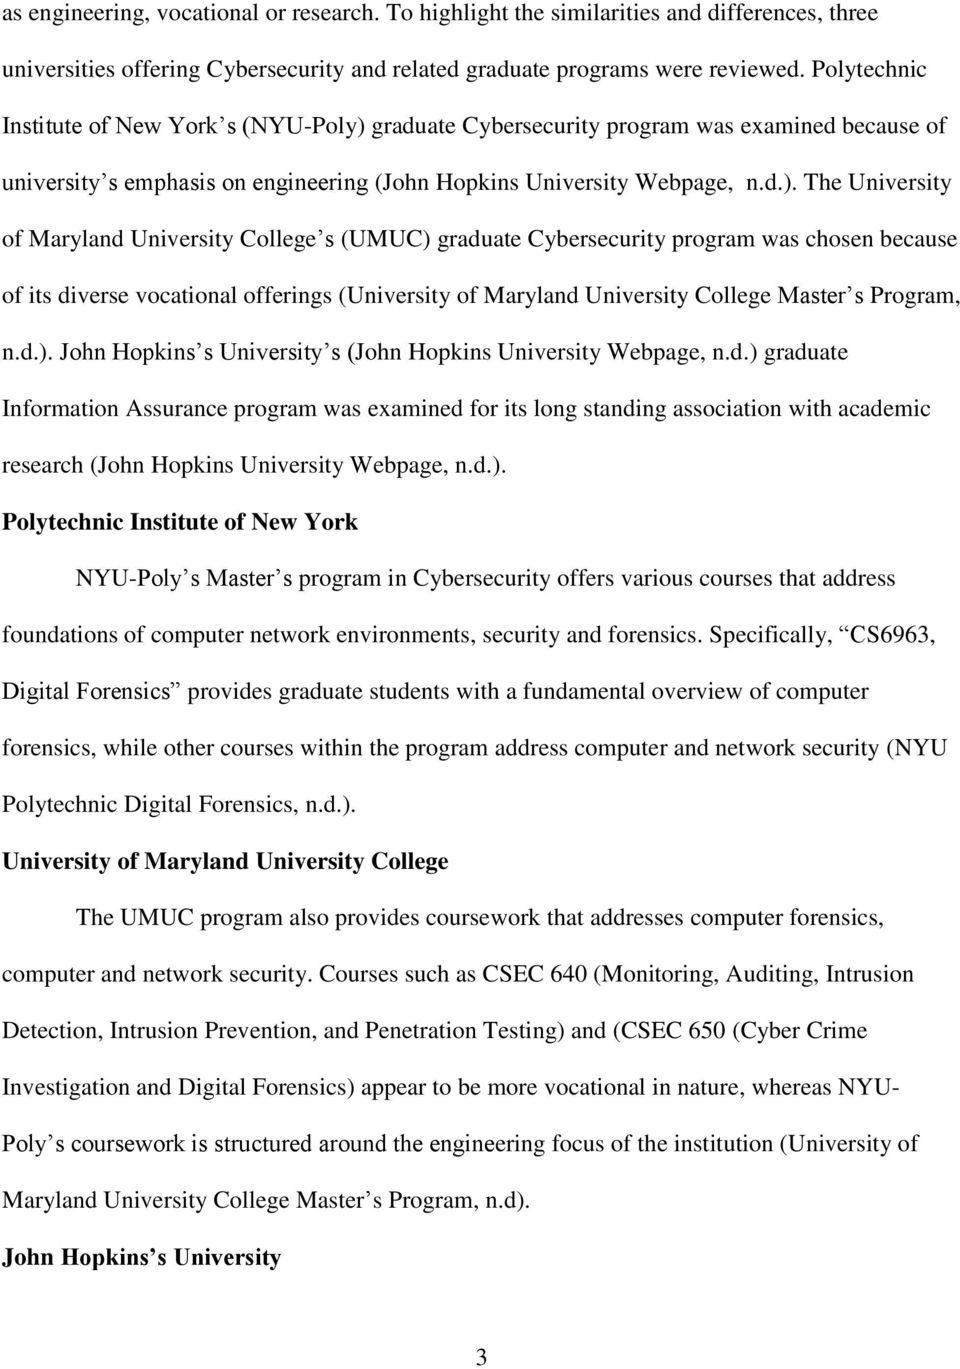 graduate Cybersecurity program was examined because of university s emphasis on engineering (John Hopkins University Webpage, n.d.).